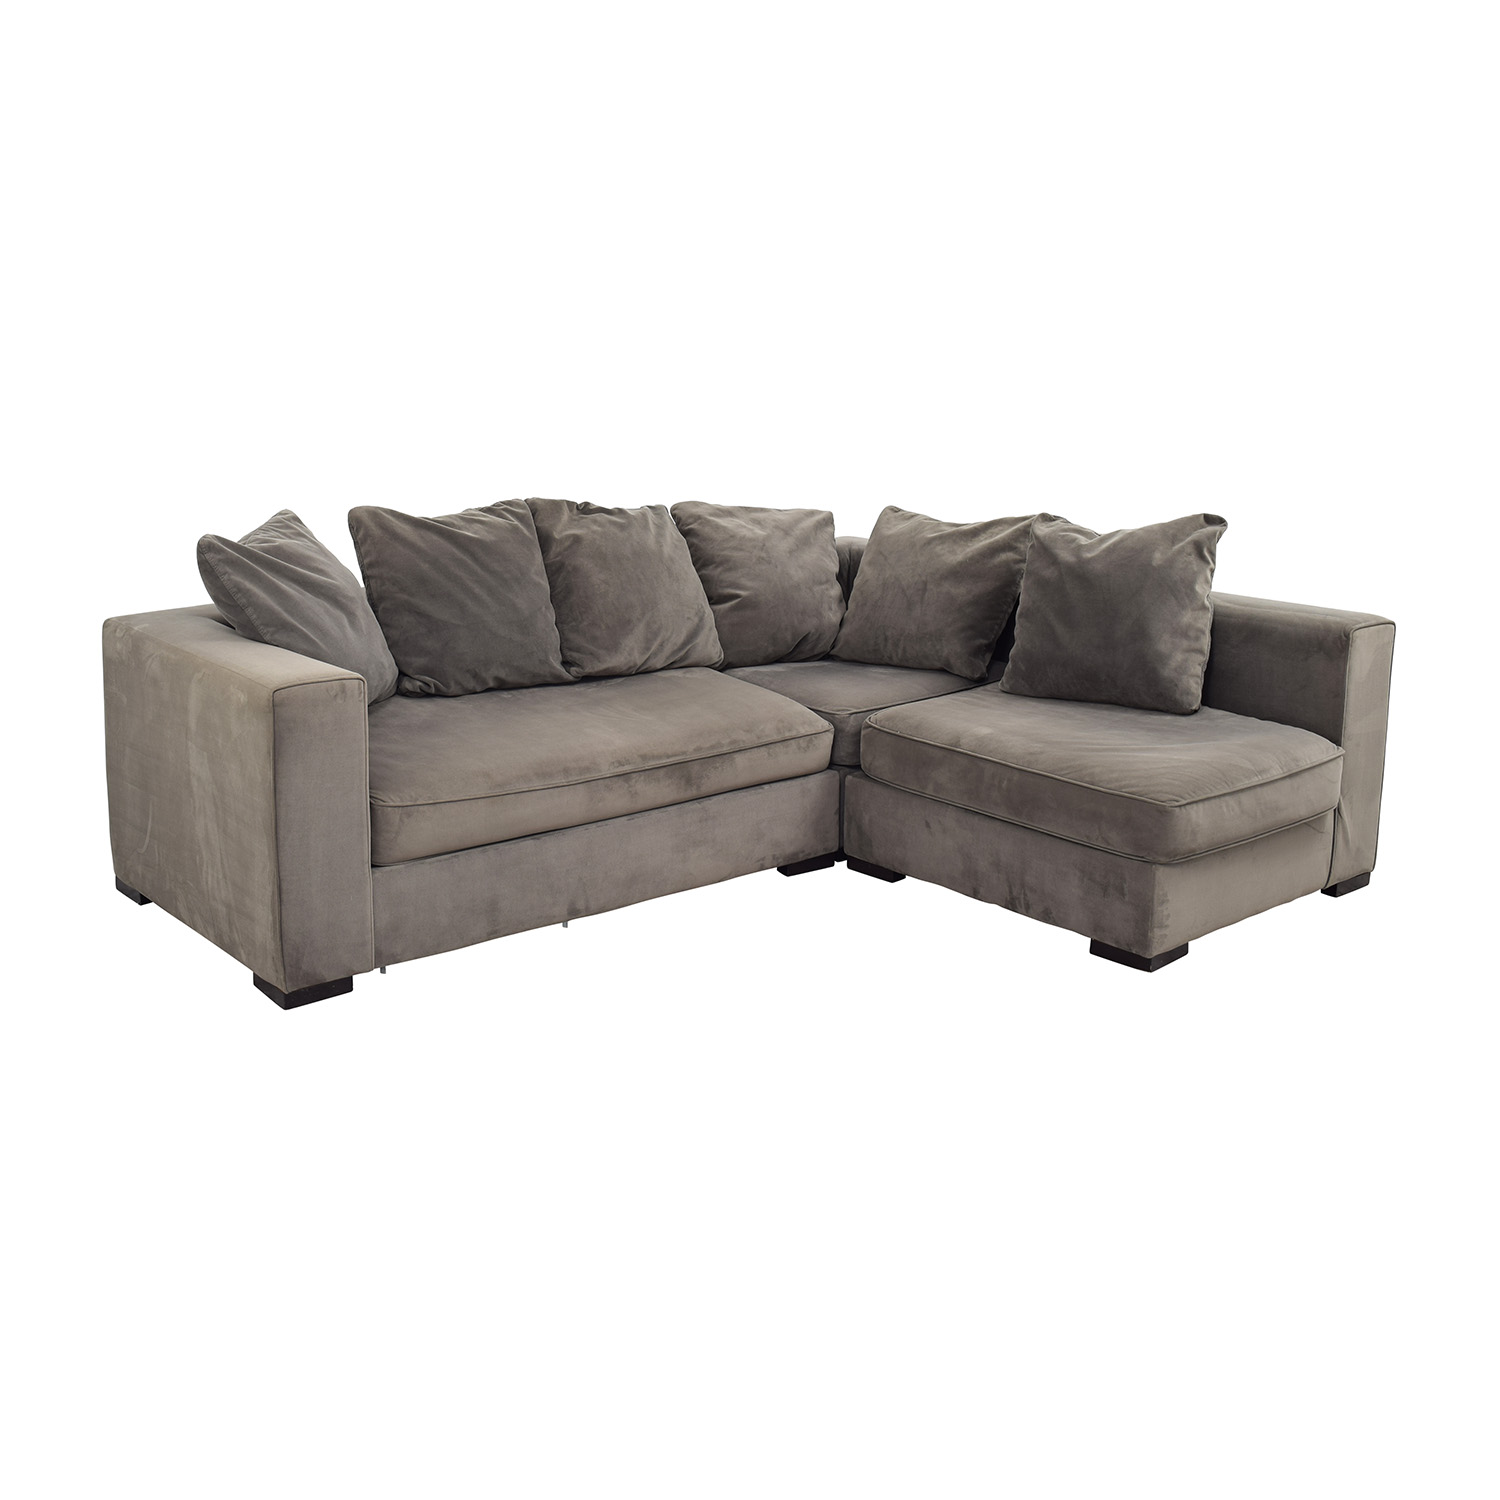 53 Off West Elm West Elm Modular Gray Sectional Sofas